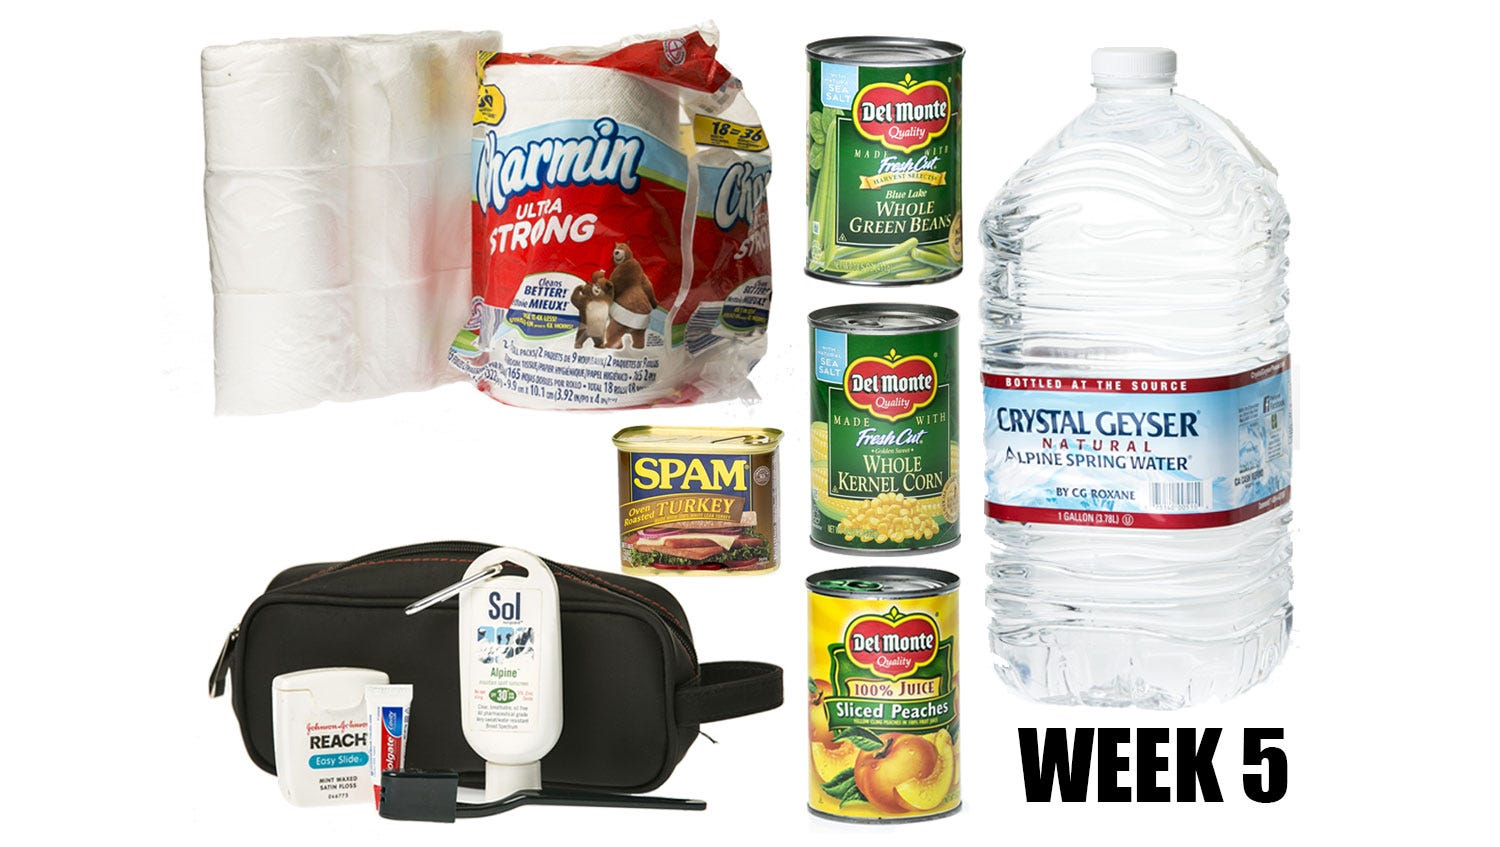 Week 5: Plan for special dietary or medical needs